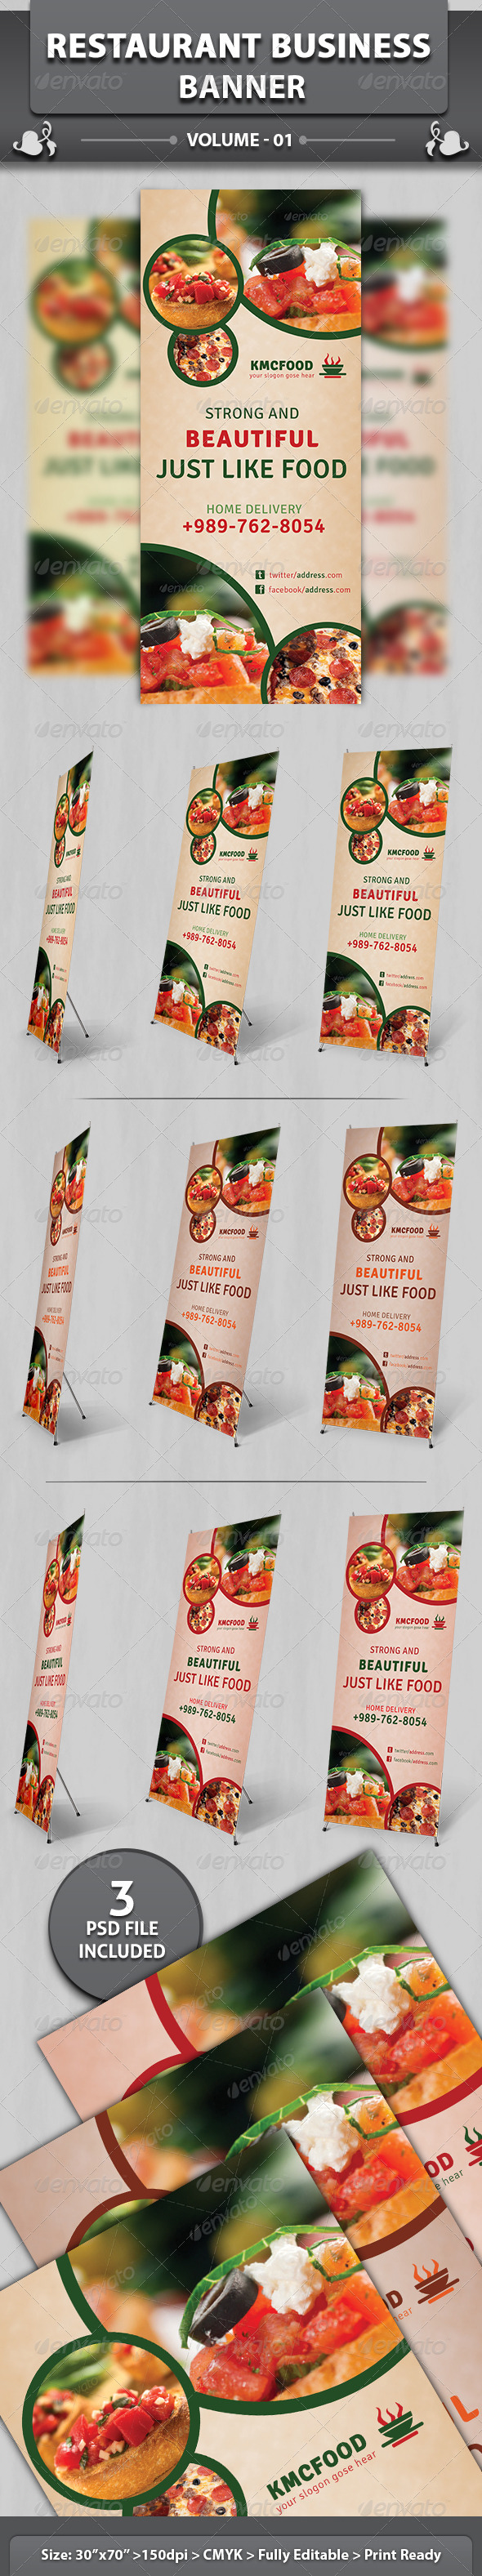 GraphicRiver Restaurant Business Banner 4931451